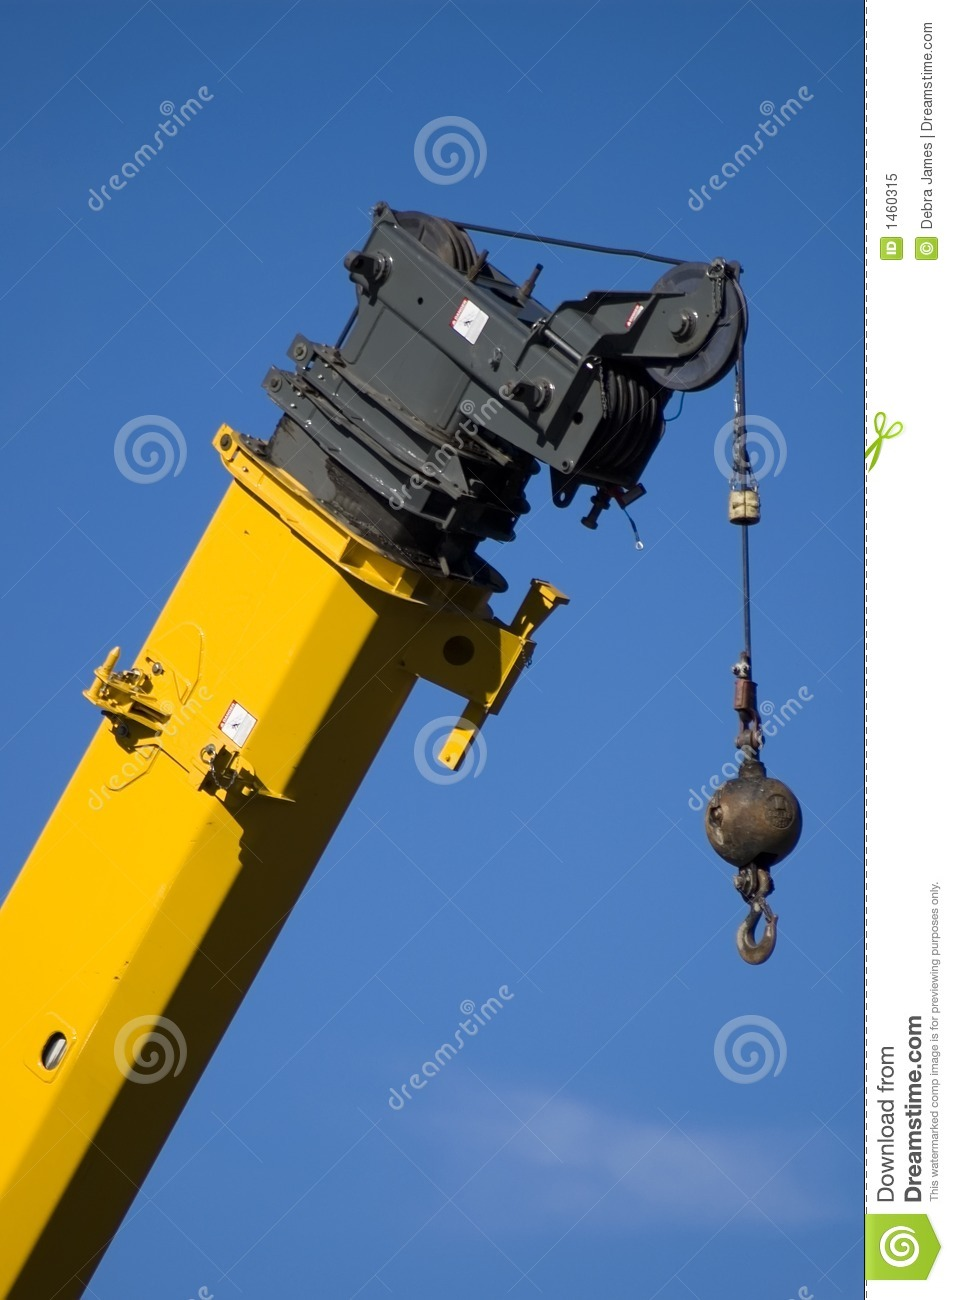 Img tfd   architecture f0776 01 together with How To Replace Timing Belt On Volvo V70 2 0d 2007 2010 together with Radiant Inclusive in addition Royalty Free Stock Photo Crane Pulley Image1460315 additionally Simple Machines. on pin wheel pulley